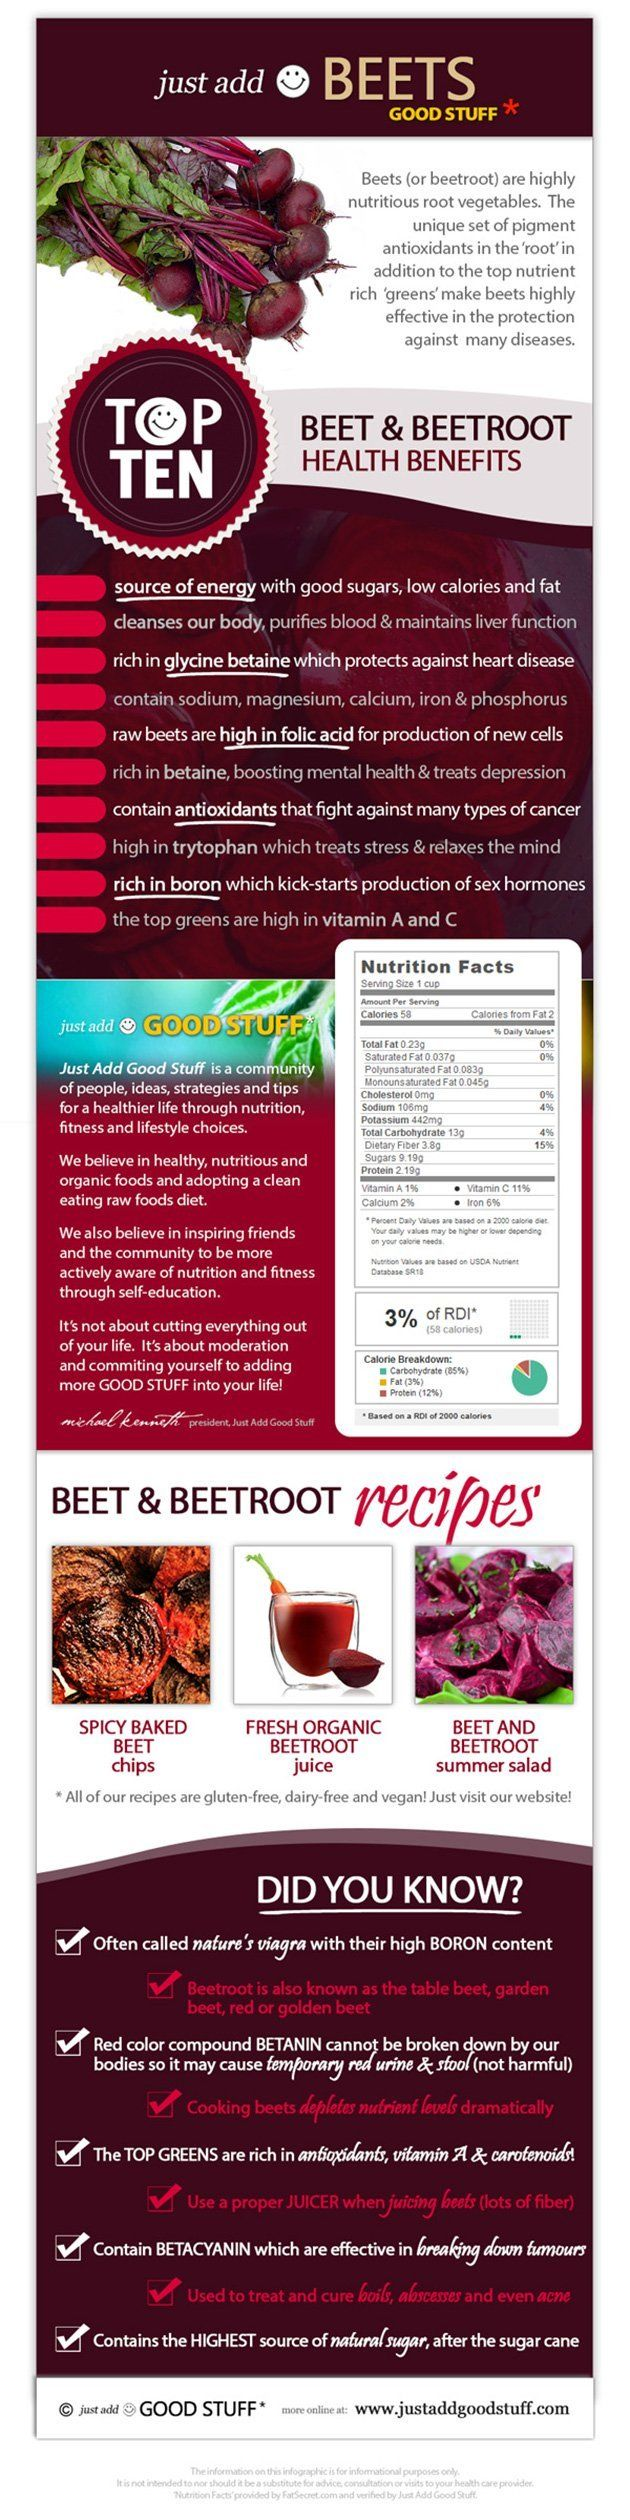 Health Benefits Of Beetroot Infographic- I've grown an obsession with beets lately!